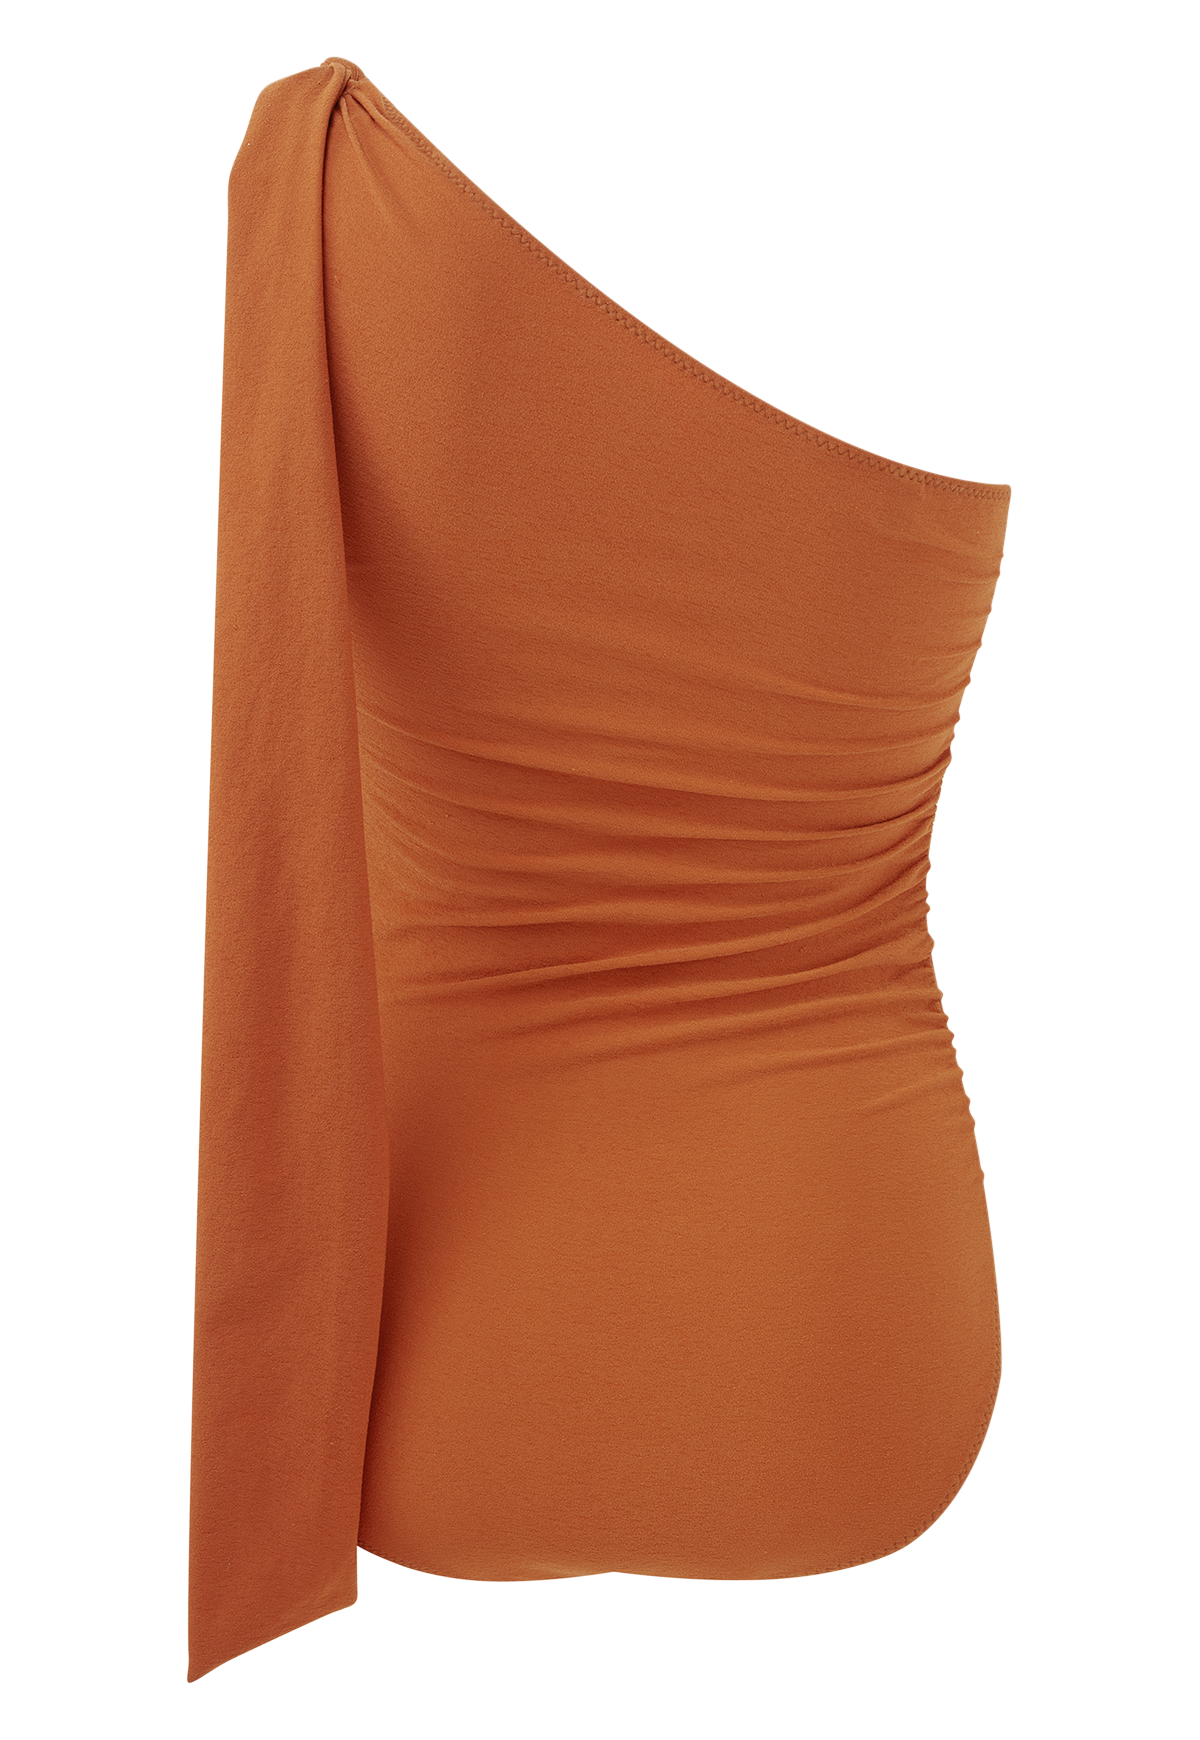 ARDEN TERRACOTTA CREPE TIE MAILLOT